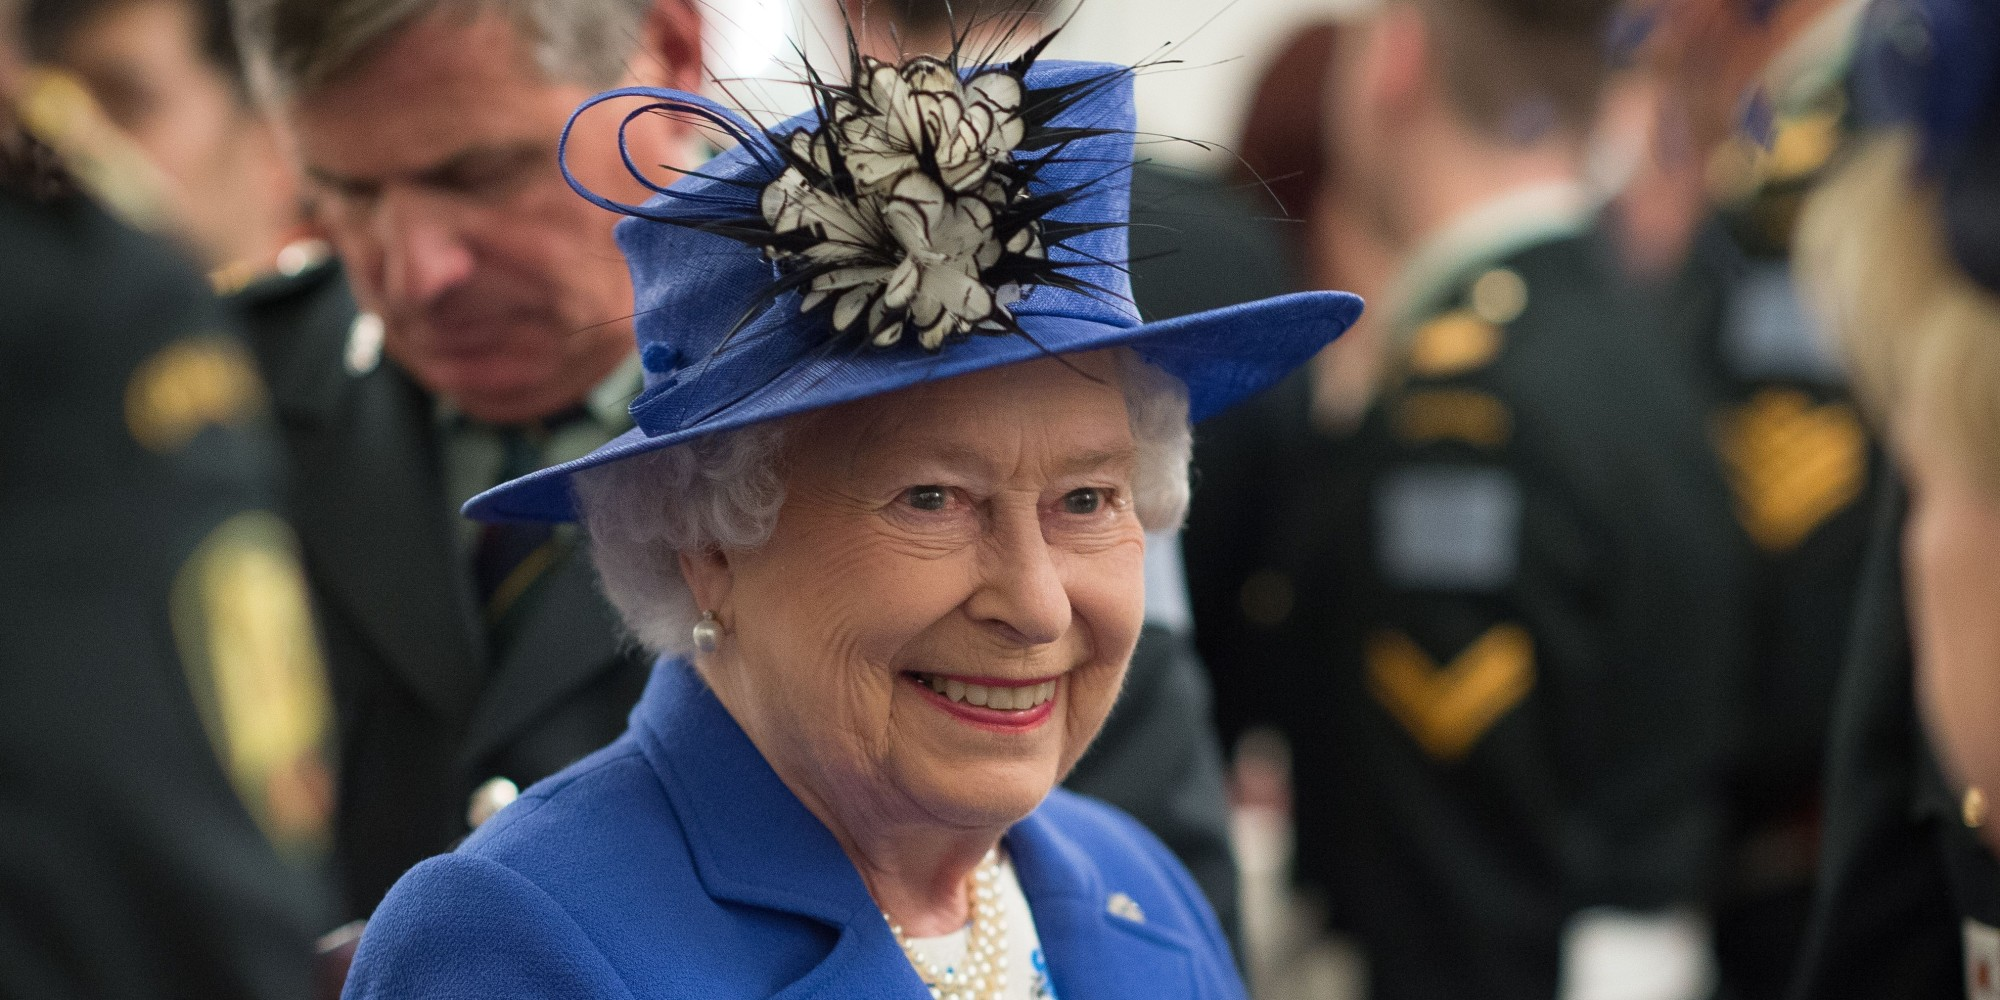 The Queen's Hats' Video Proves Her Majesty Can Pull Off Just About ...